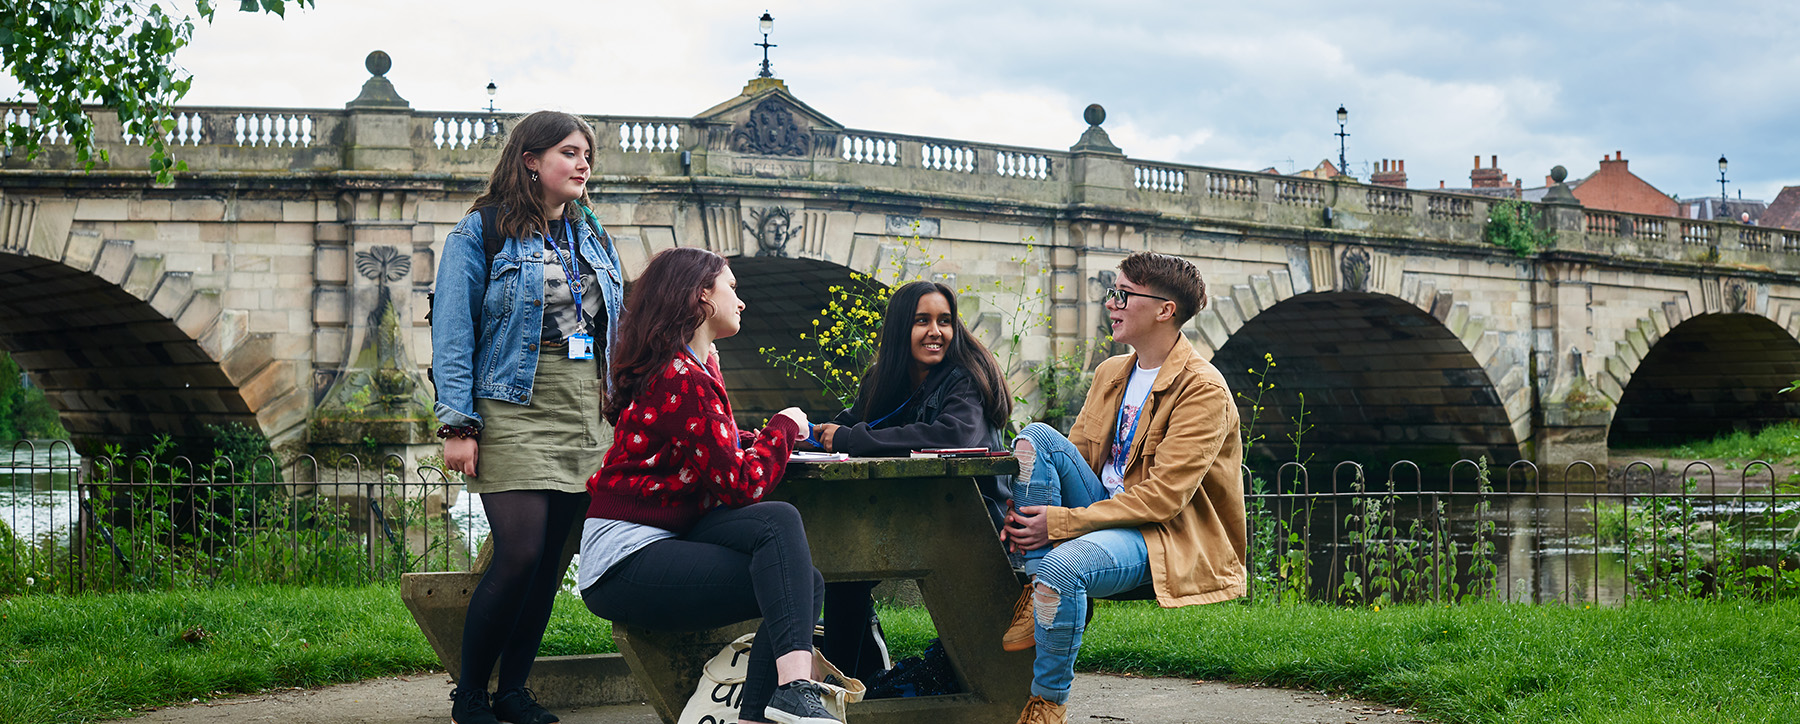 Students in Abbey Gardens